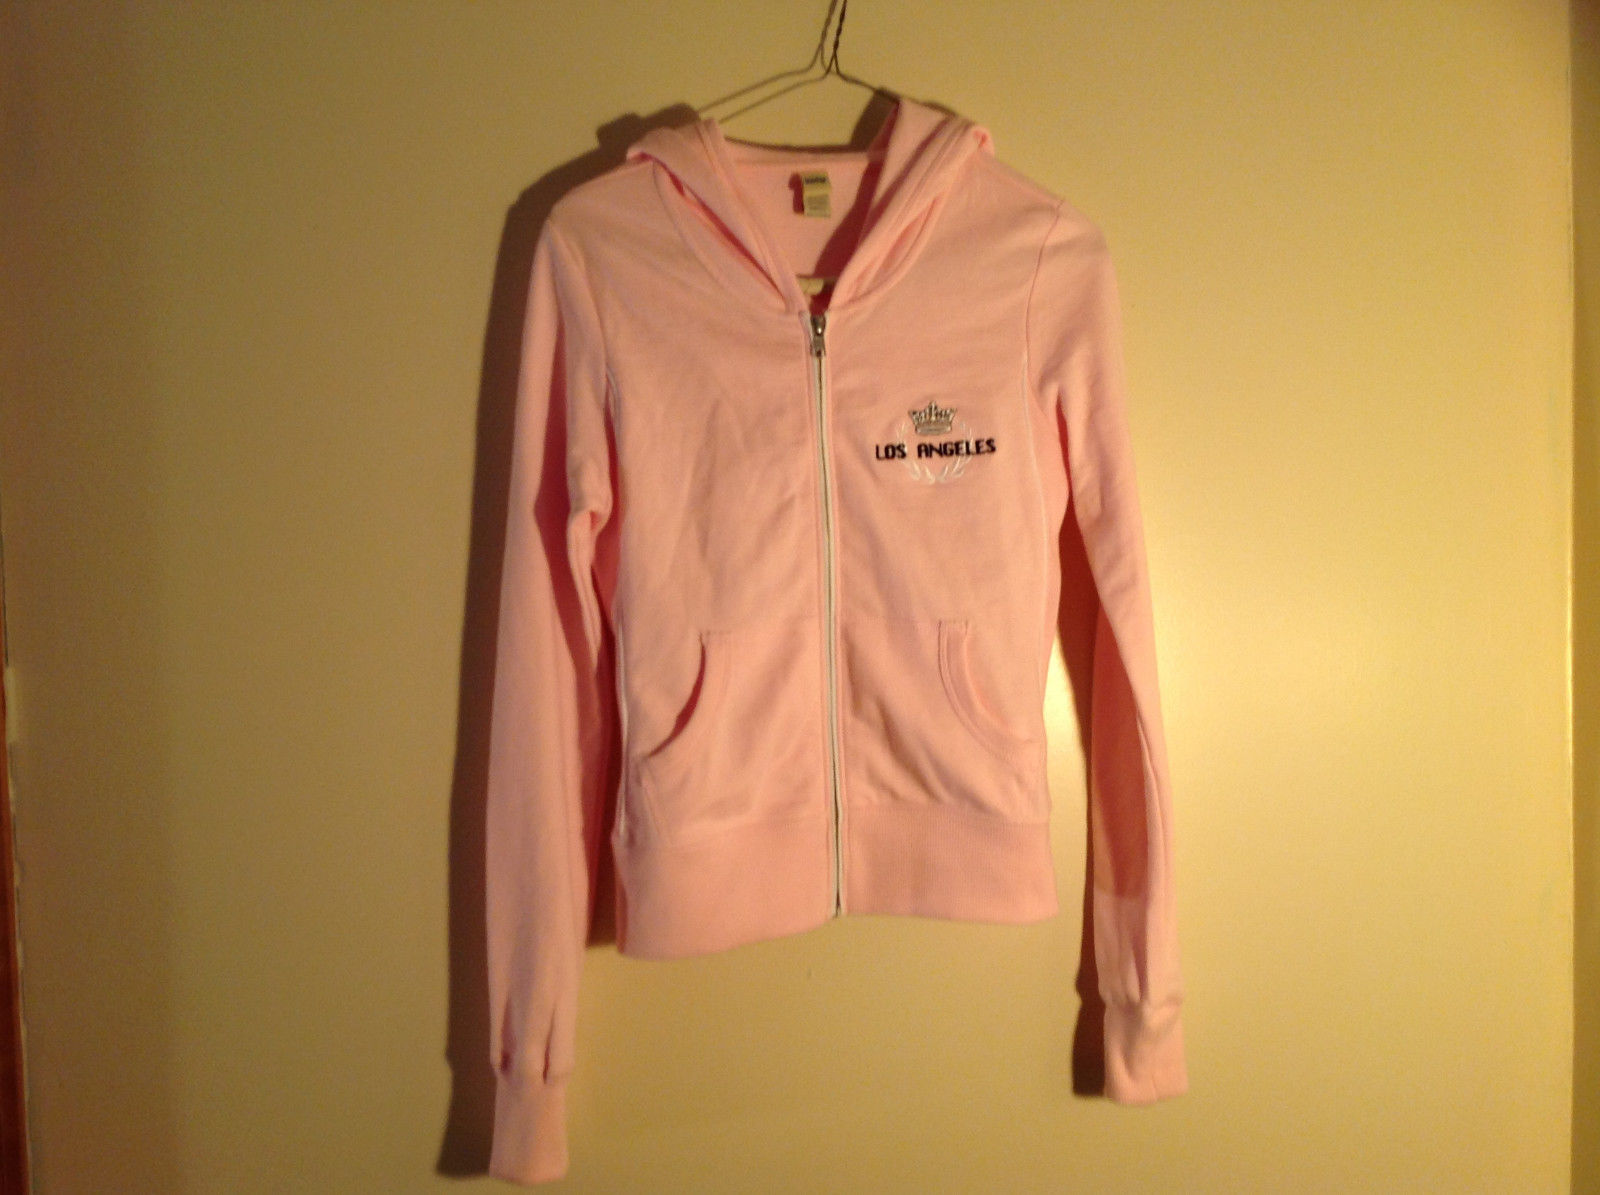 Kavio Pink Los Angeles Zip Up Long Sleeves Hoodie Jacket Size Small